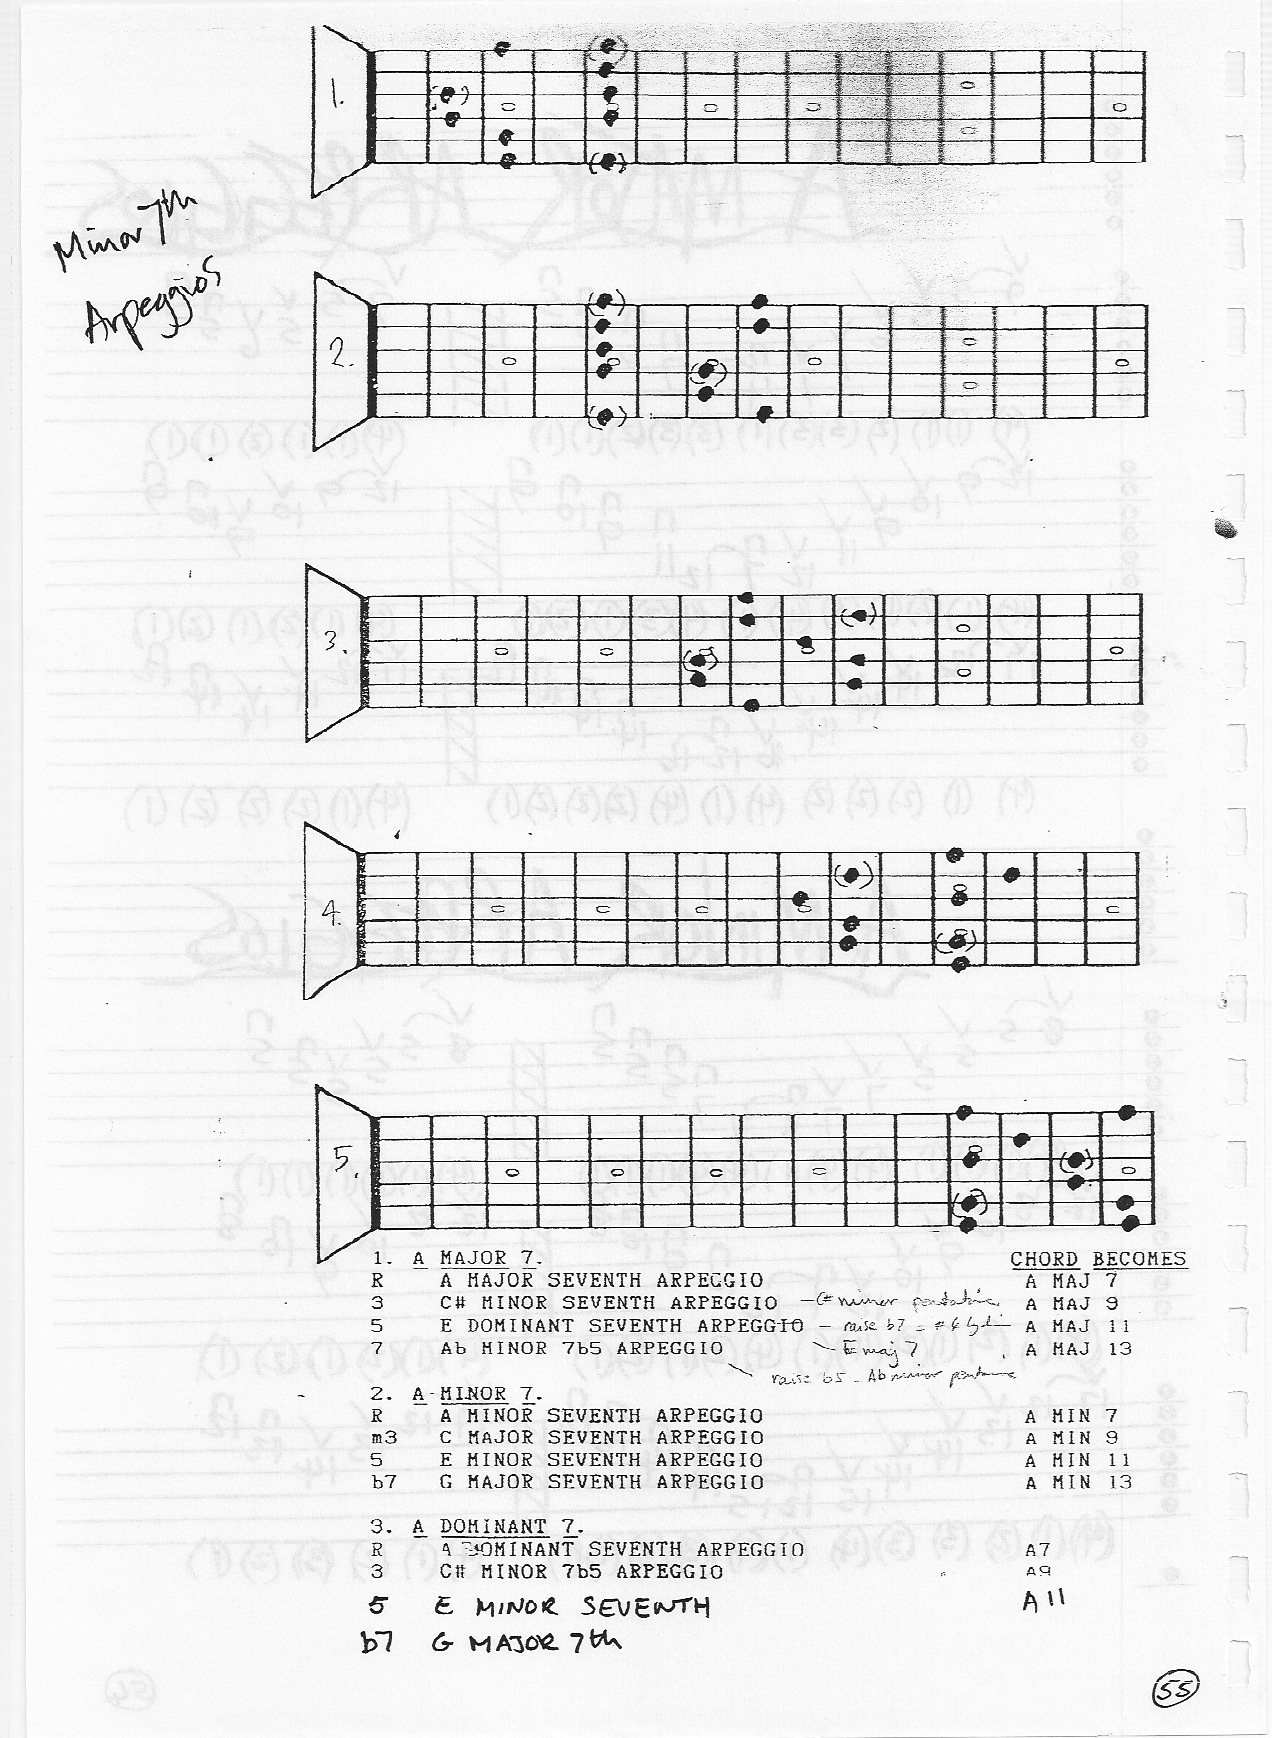 Advanced Guitar Lessons In Cambridge And Jazz Guitar Lessons In